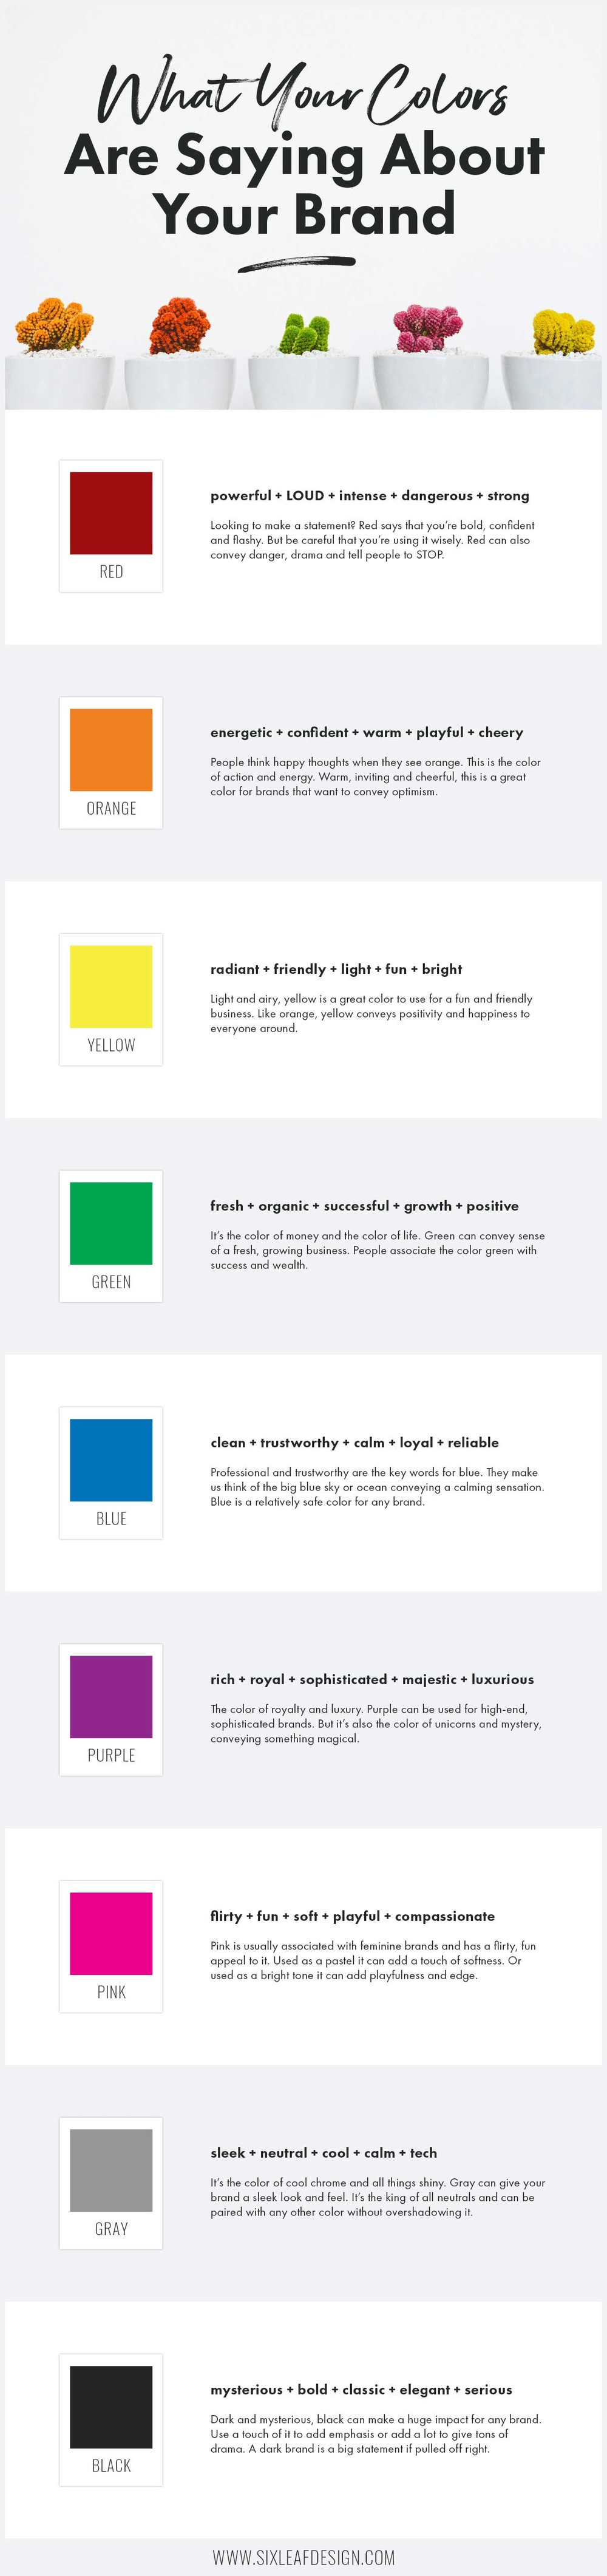 What Your Colors Are Saying About Your Brand Infographic | Choosing The Right Colors For Your Brand Infographic